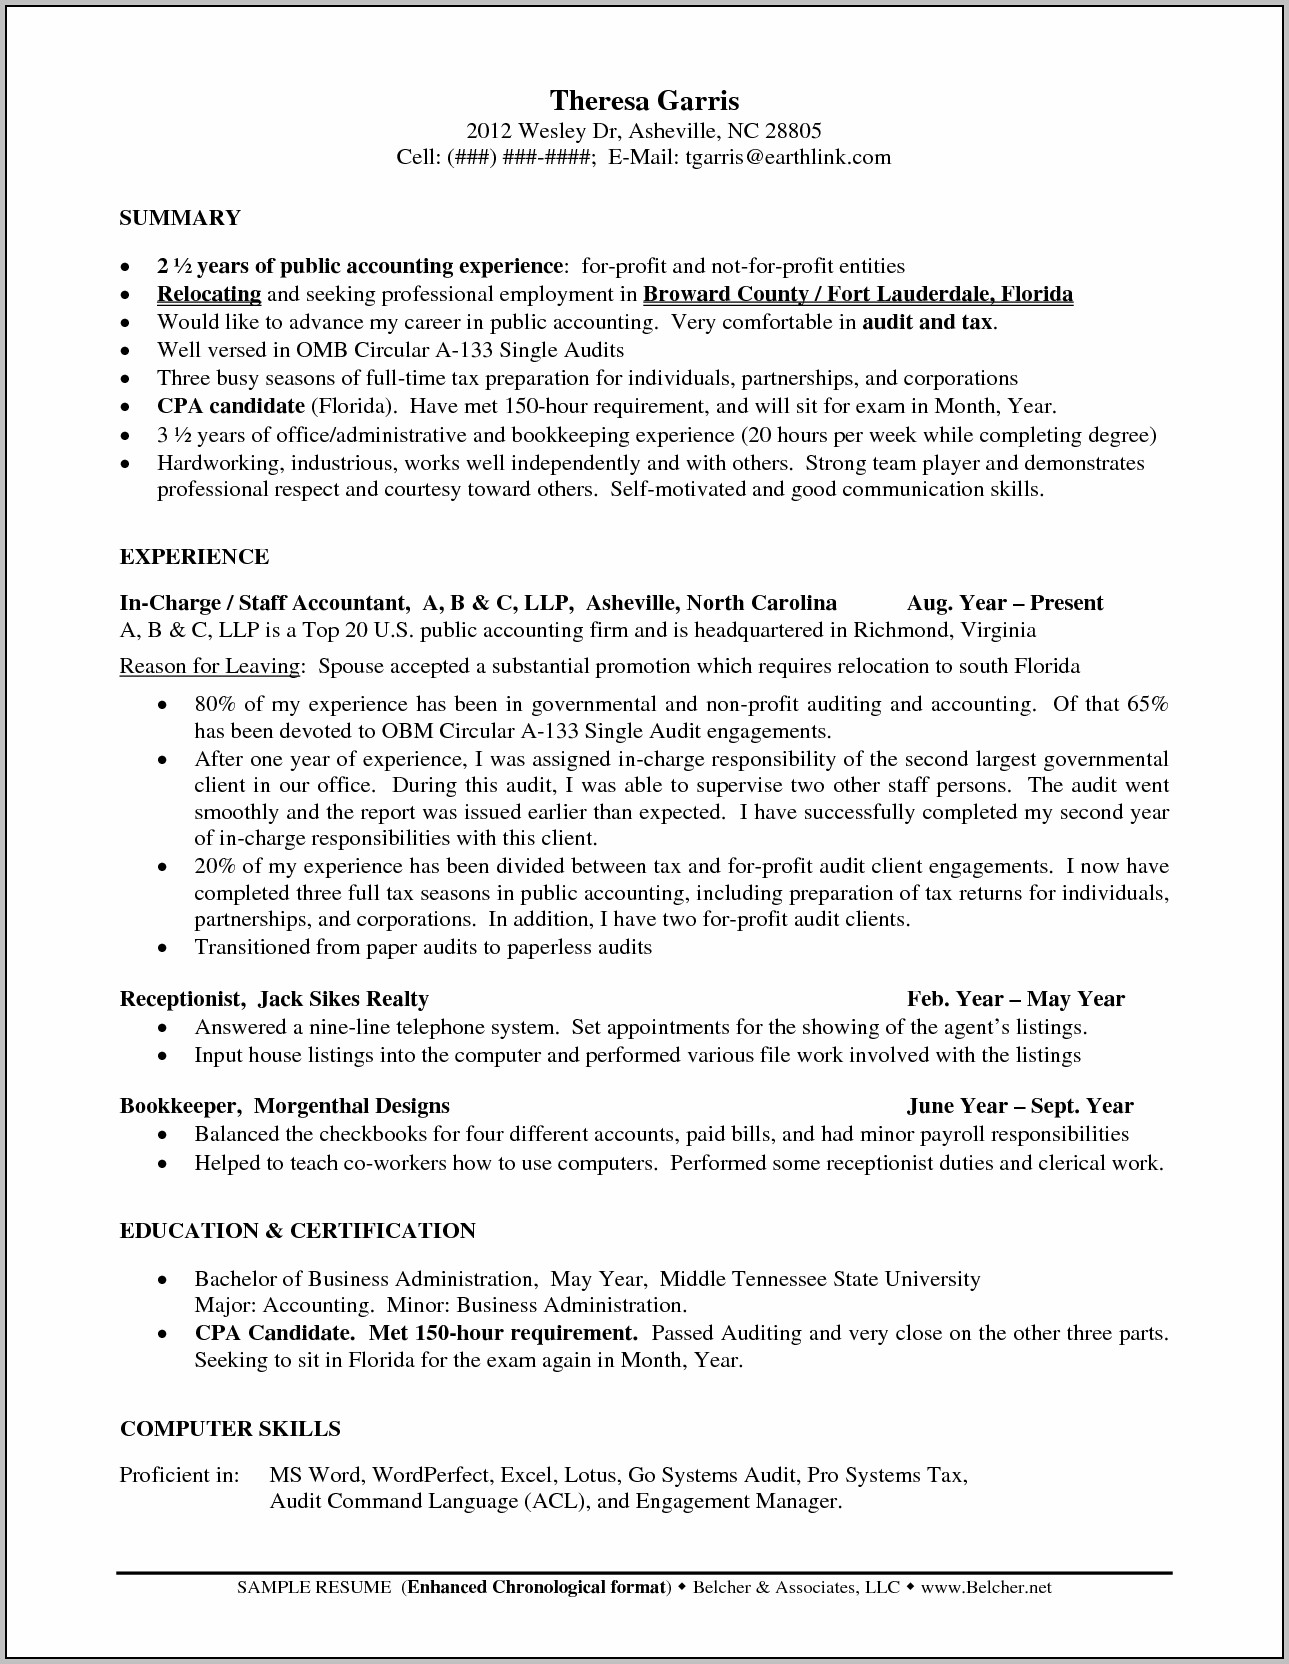 Professional Resume Senior Accountant